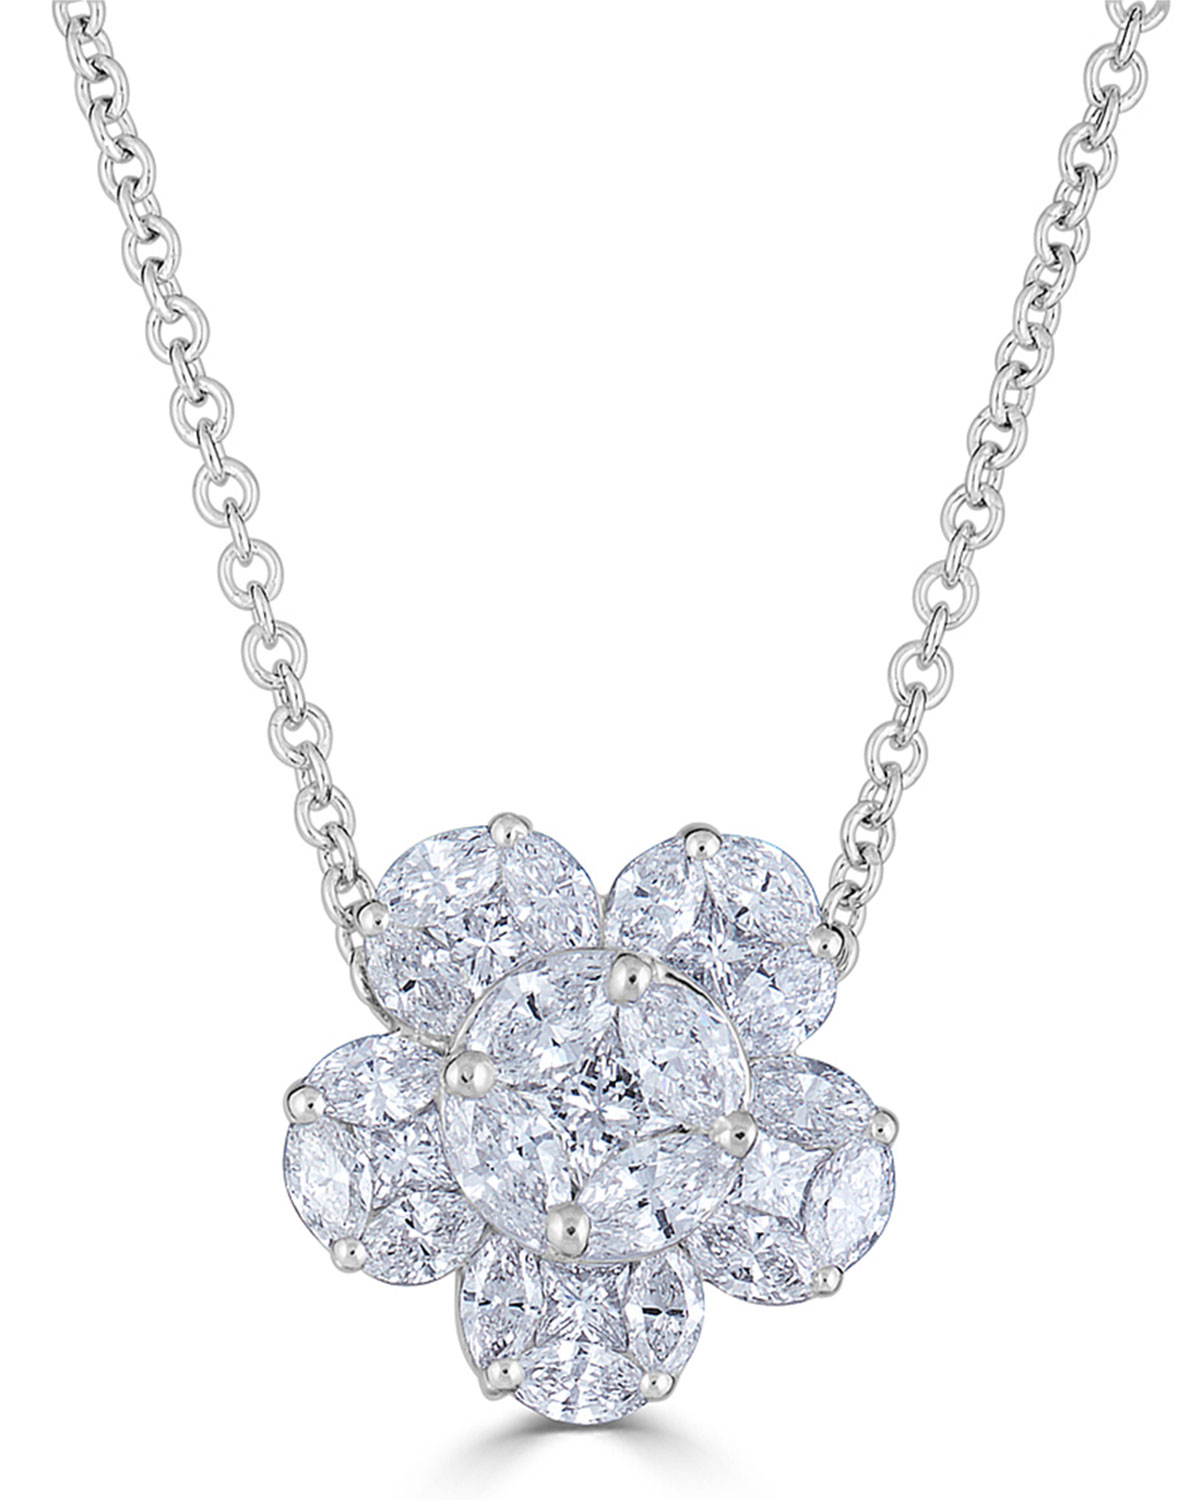 ZYDO 18k Mosaic Flower Diamond Pendant Necklace